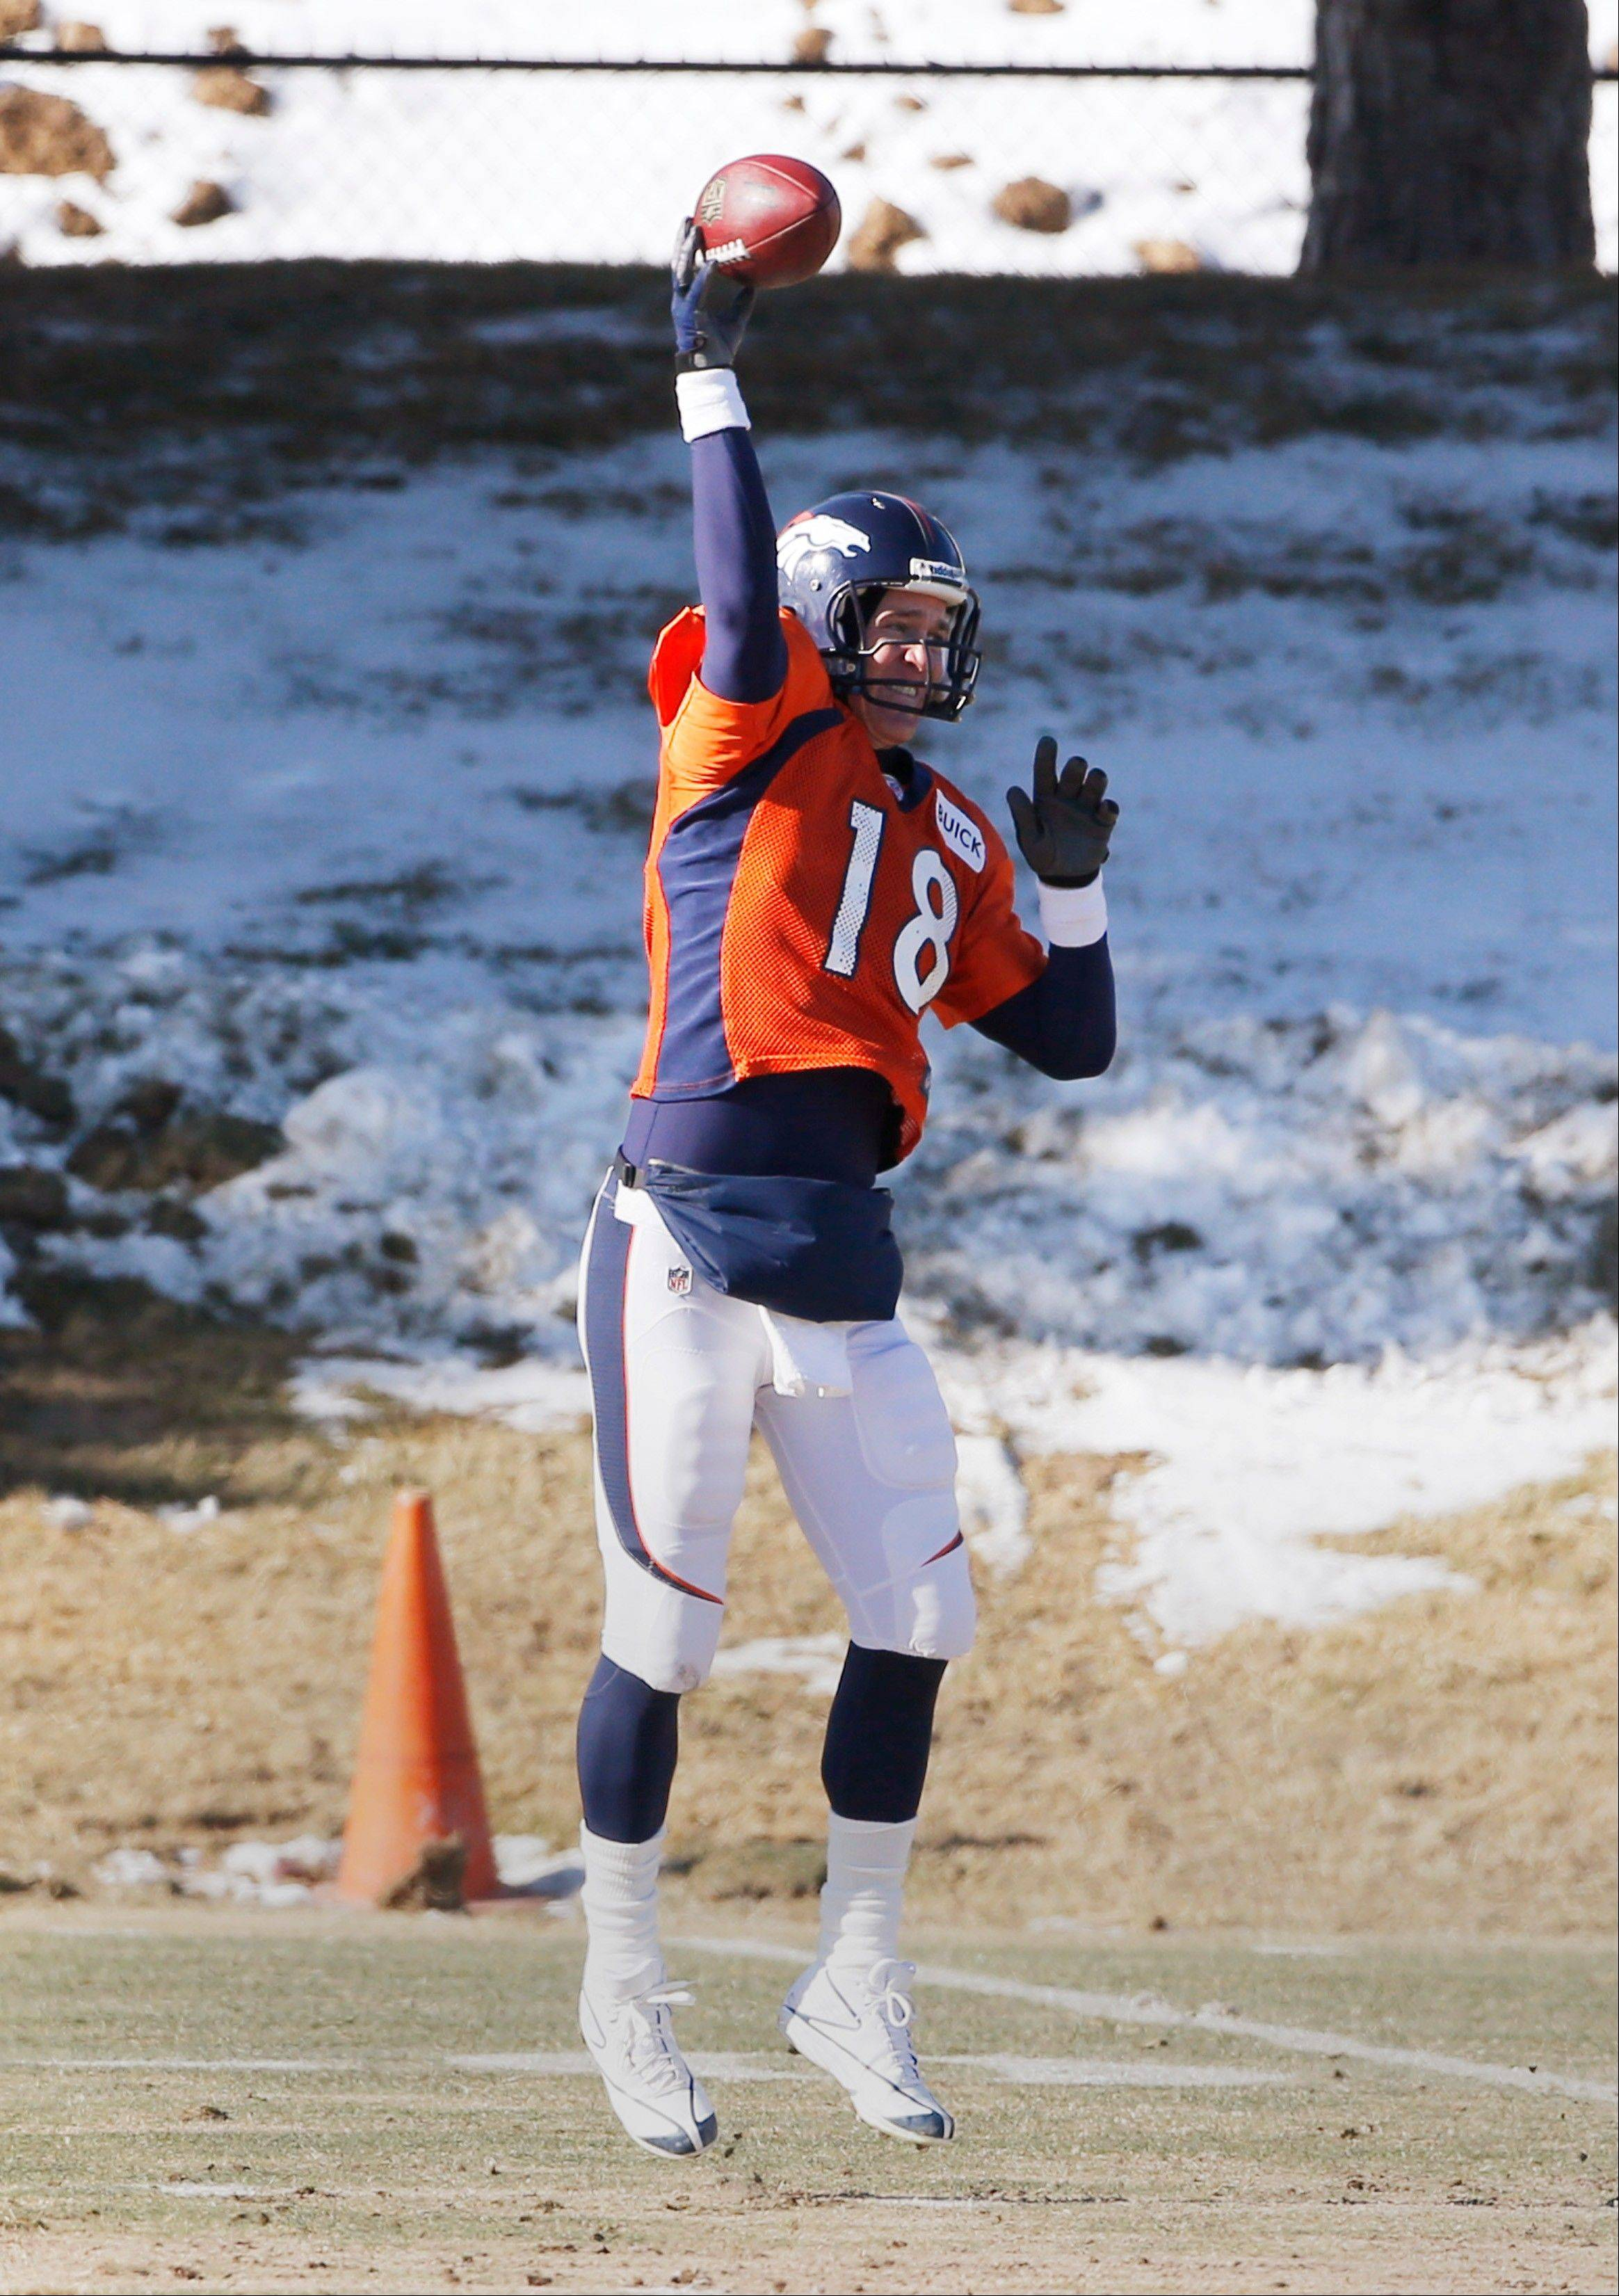 Denver Broncos quarterback Peyton Manning (18) throws a pass at practice for the football team's NFL playoff game against the San Diego Chargers at the Broncos training facility in Englewood, Colo., on Wednesday, Jan. 8, 2014.